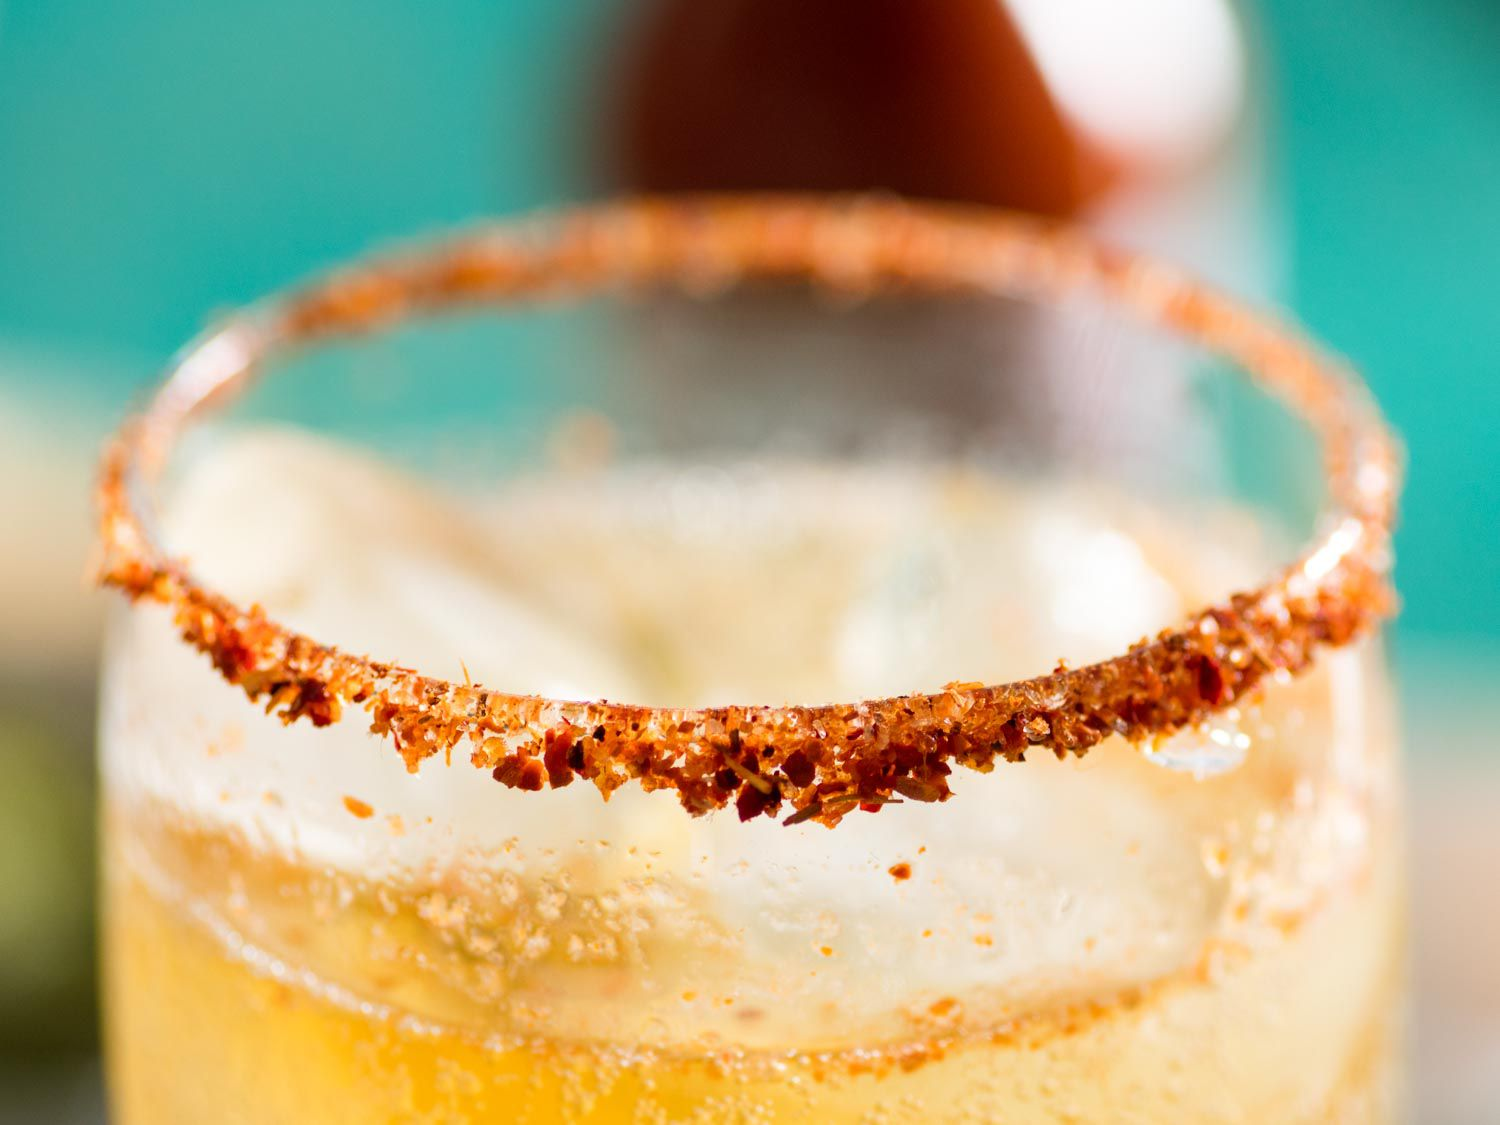 A salt- and chili-rimmed glass containing a michelada cocktail